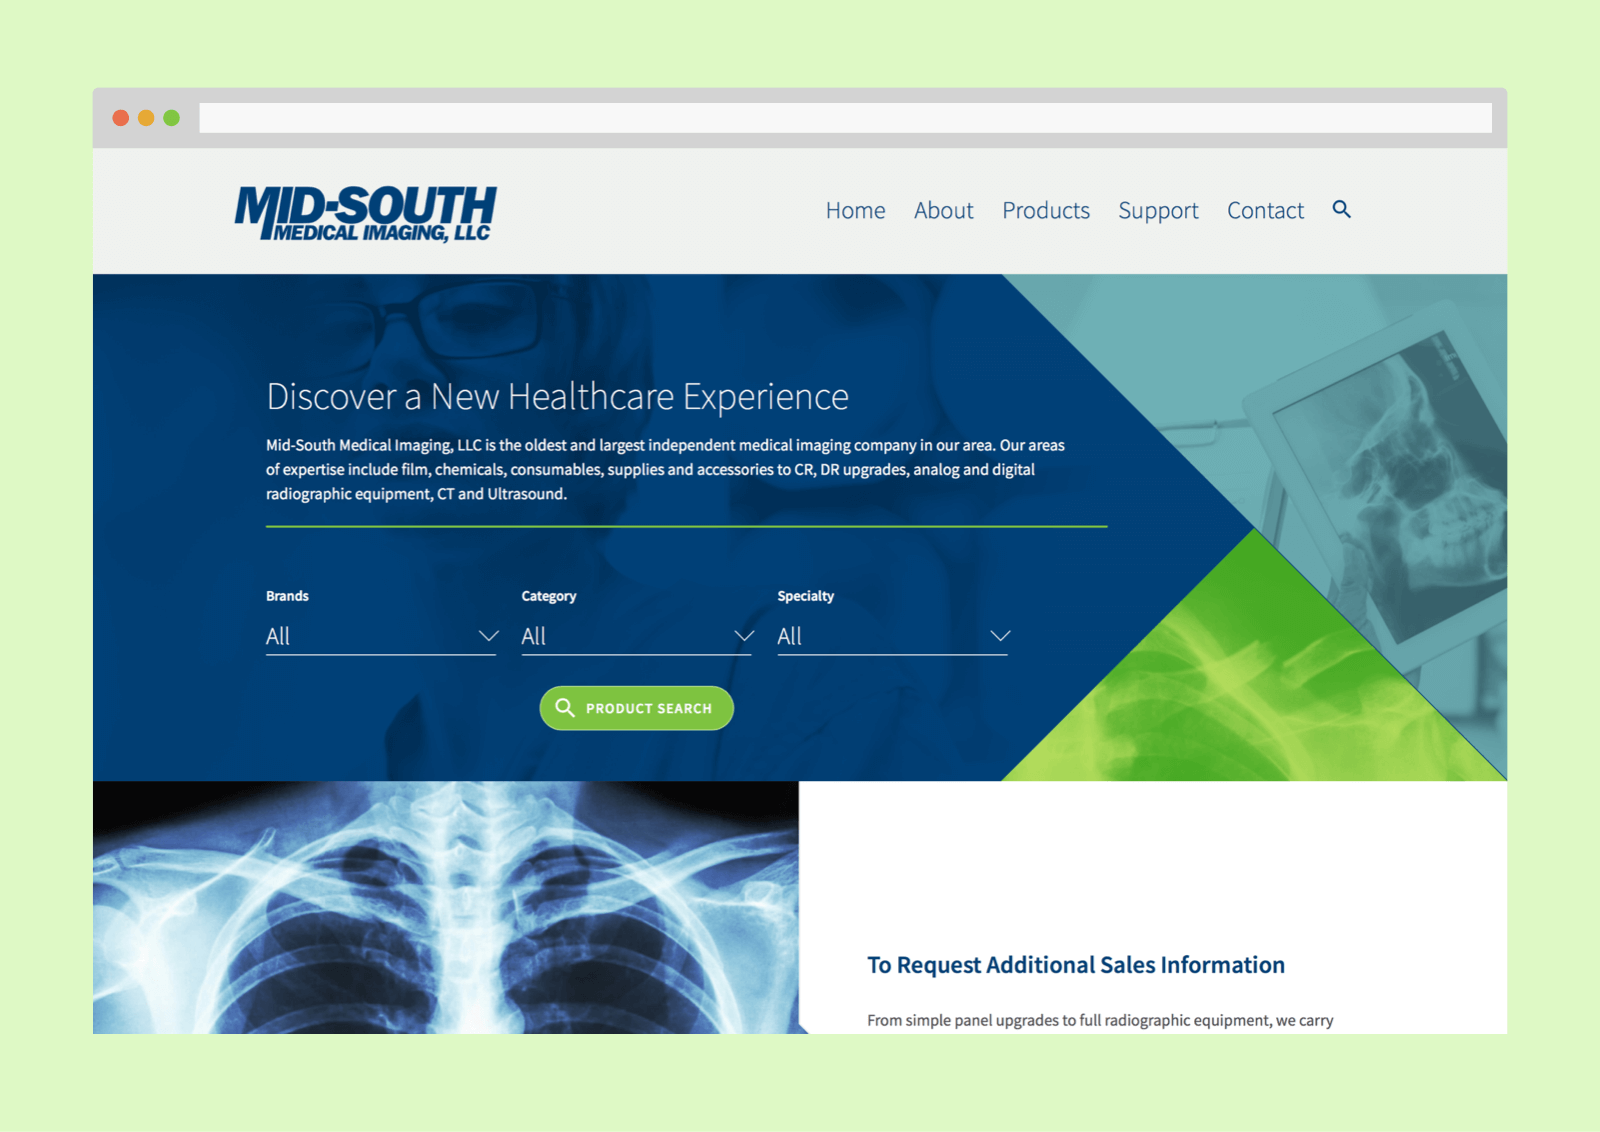 The Mid-South homepage prominently features a product search component